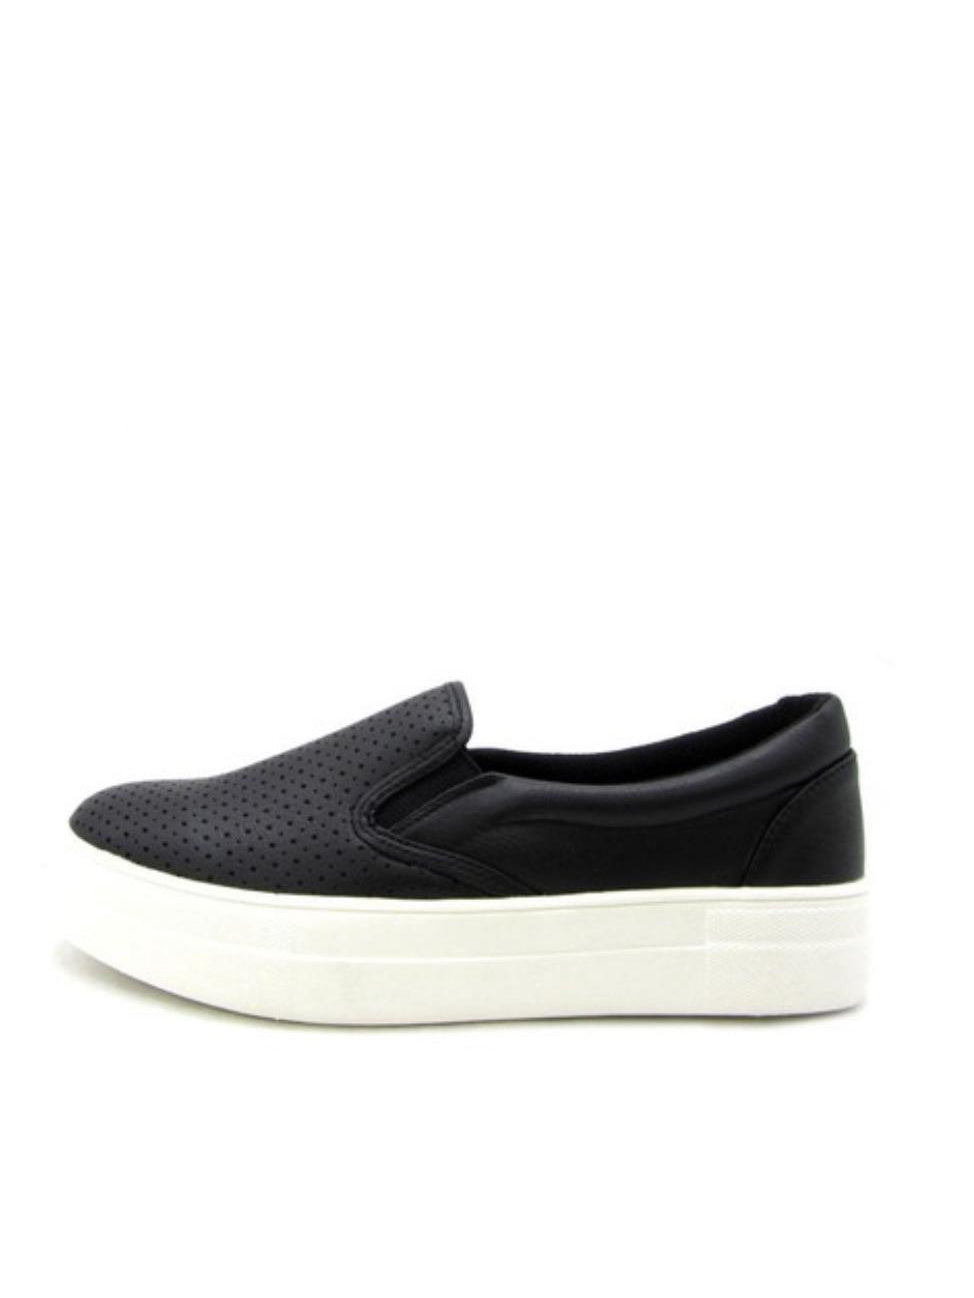 THE SODA PREFORATED SLIP ON SNEAKERS - BLACK